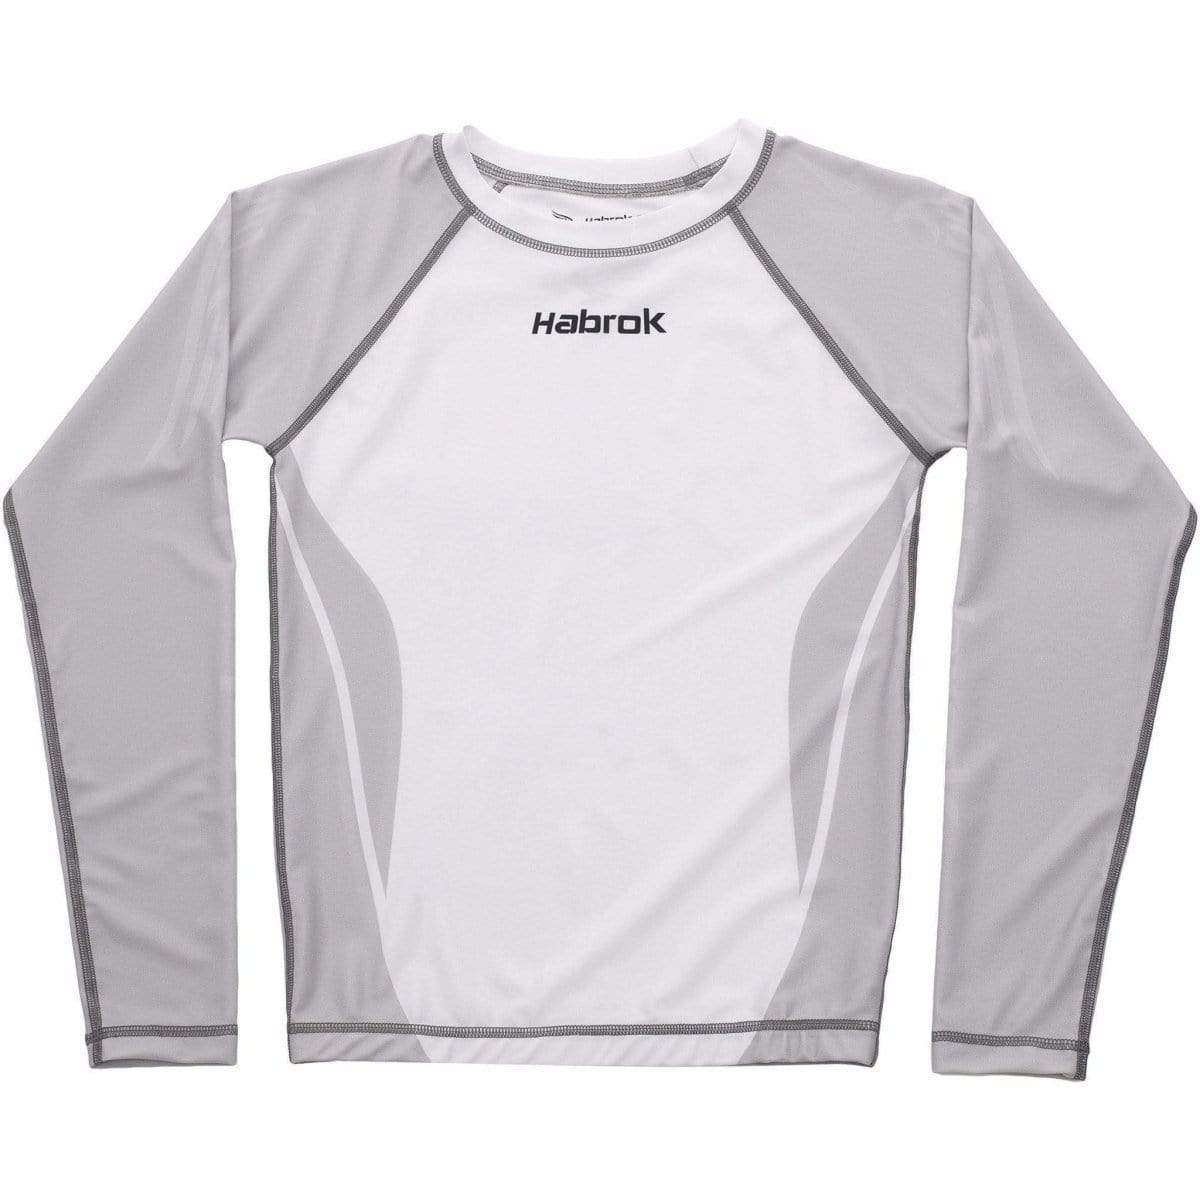 Habrok Rash Guard XS / GREY Performance Rash Guard - Youth Habrok - Performance Rash Guard - Youth